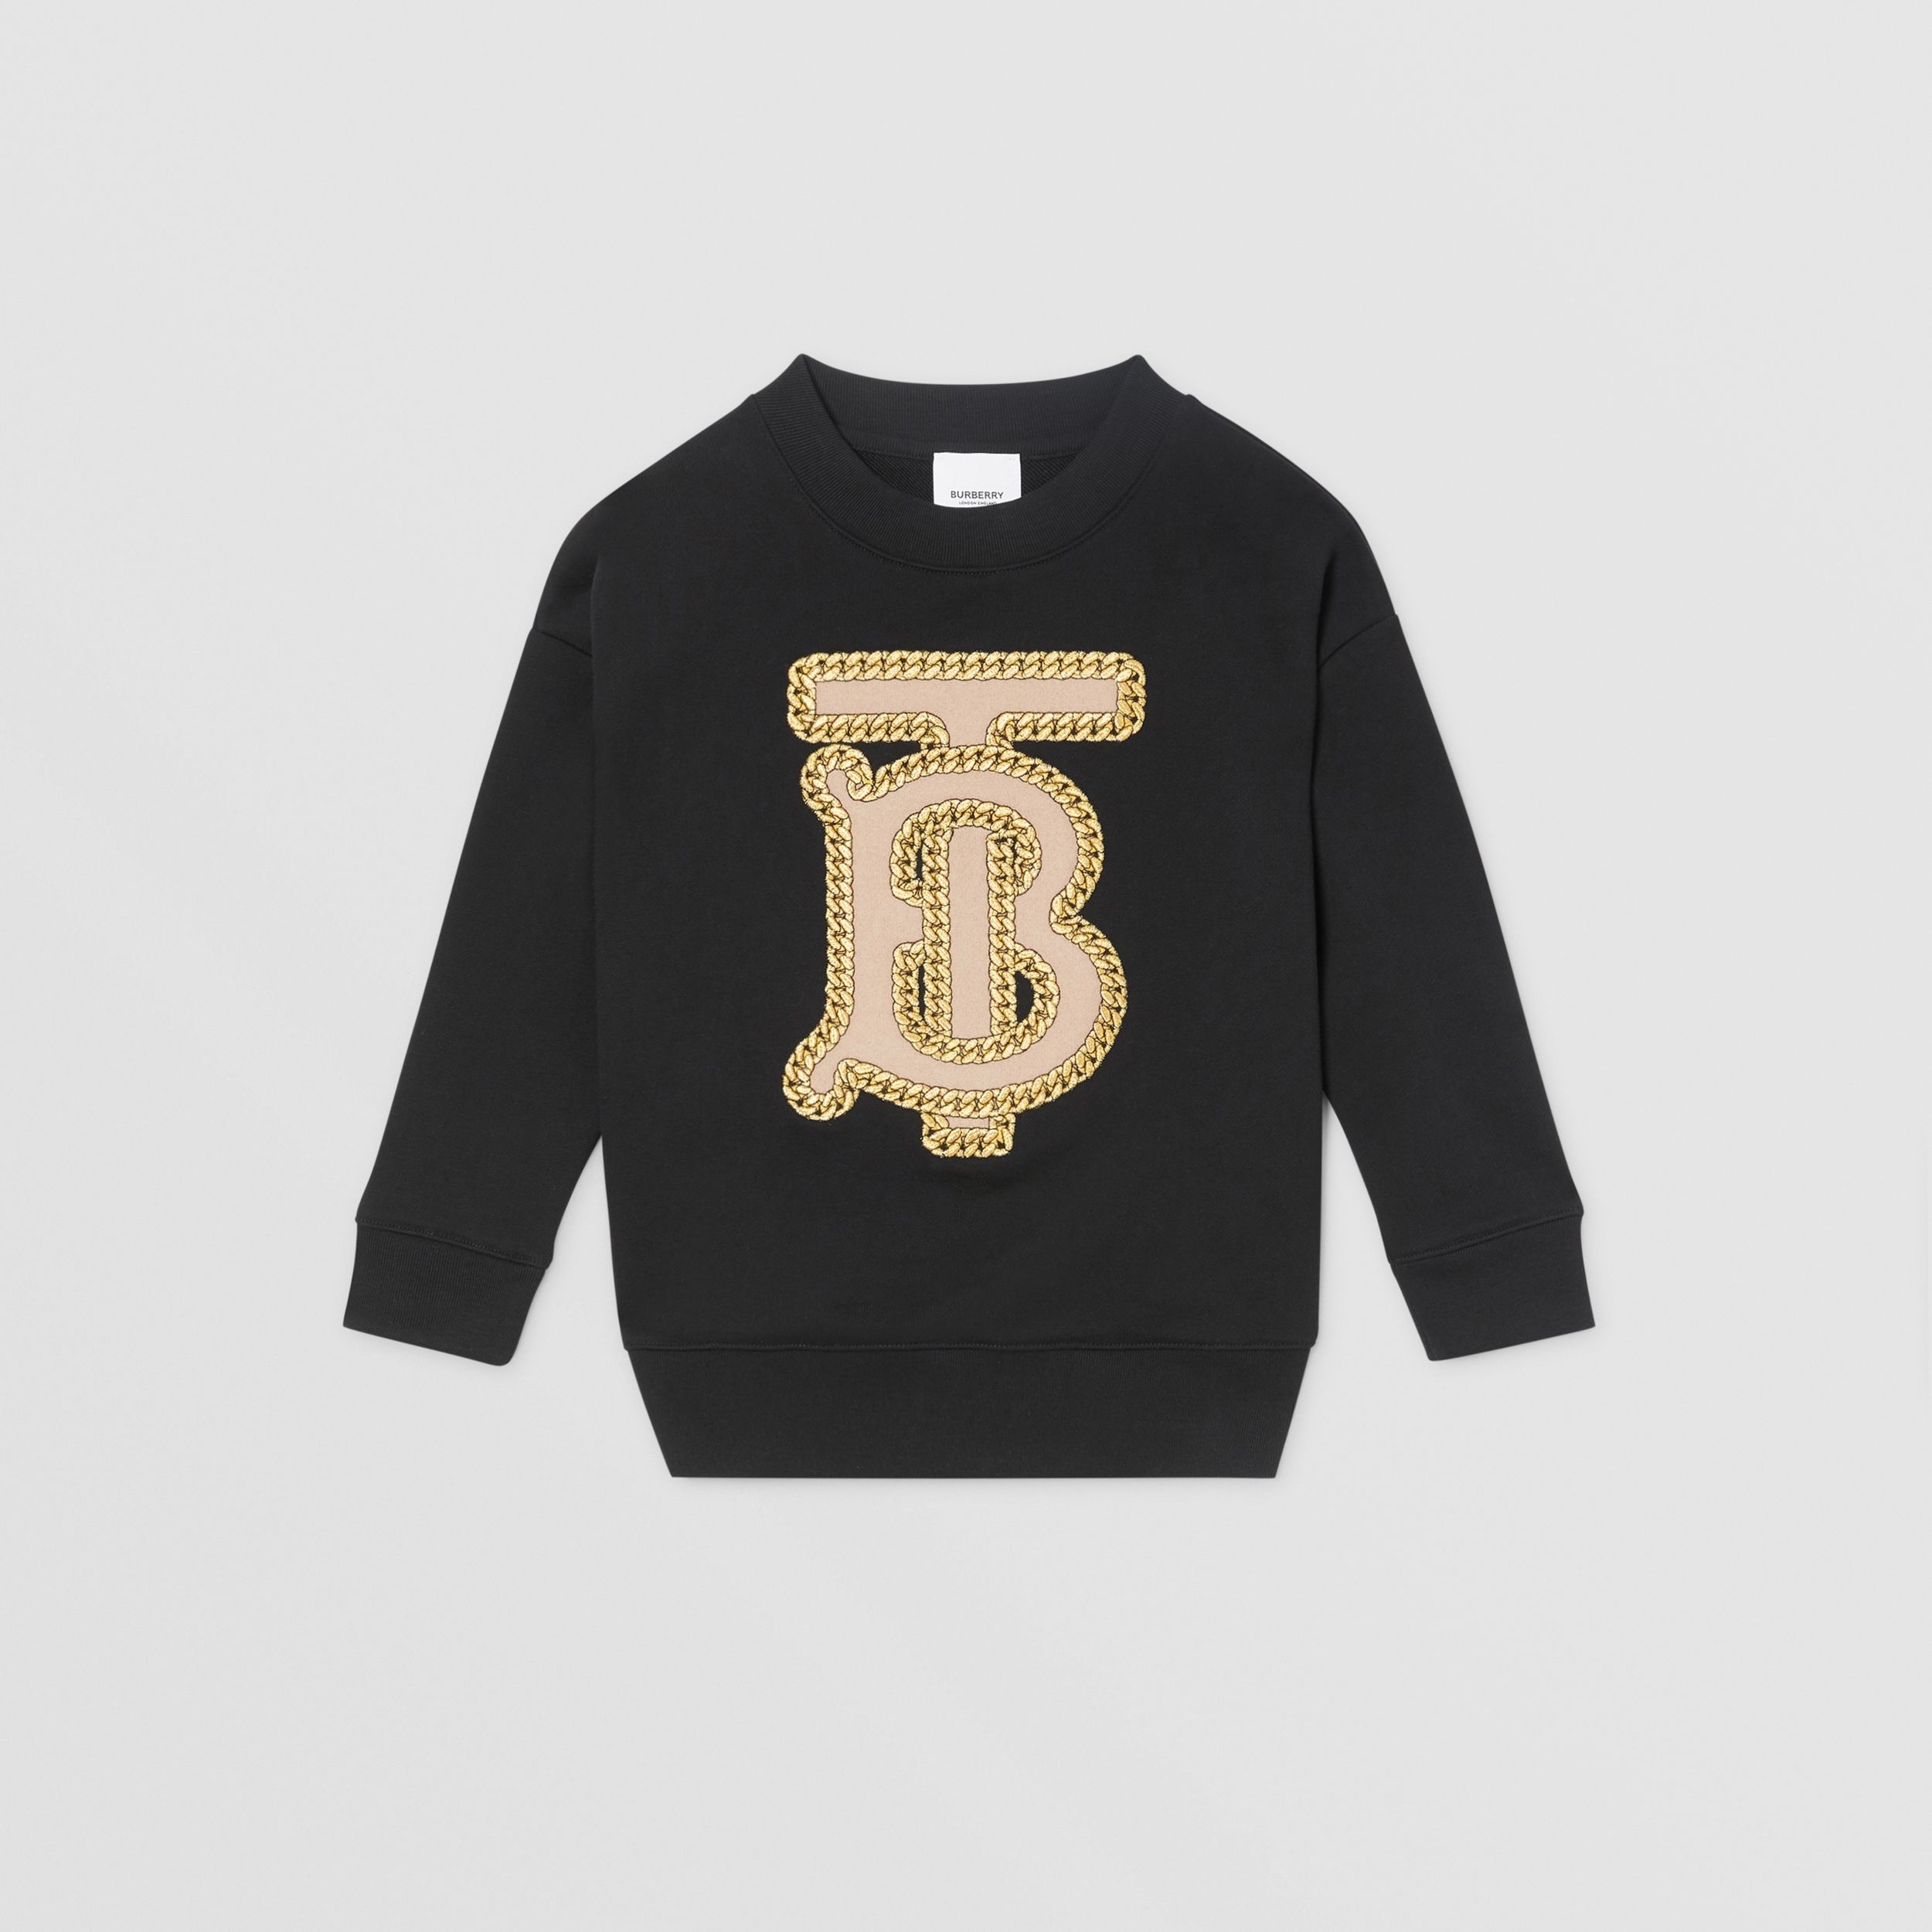 Embroidered Monogram Motif Cotton Sweatshirt in Black | Burberry - 1